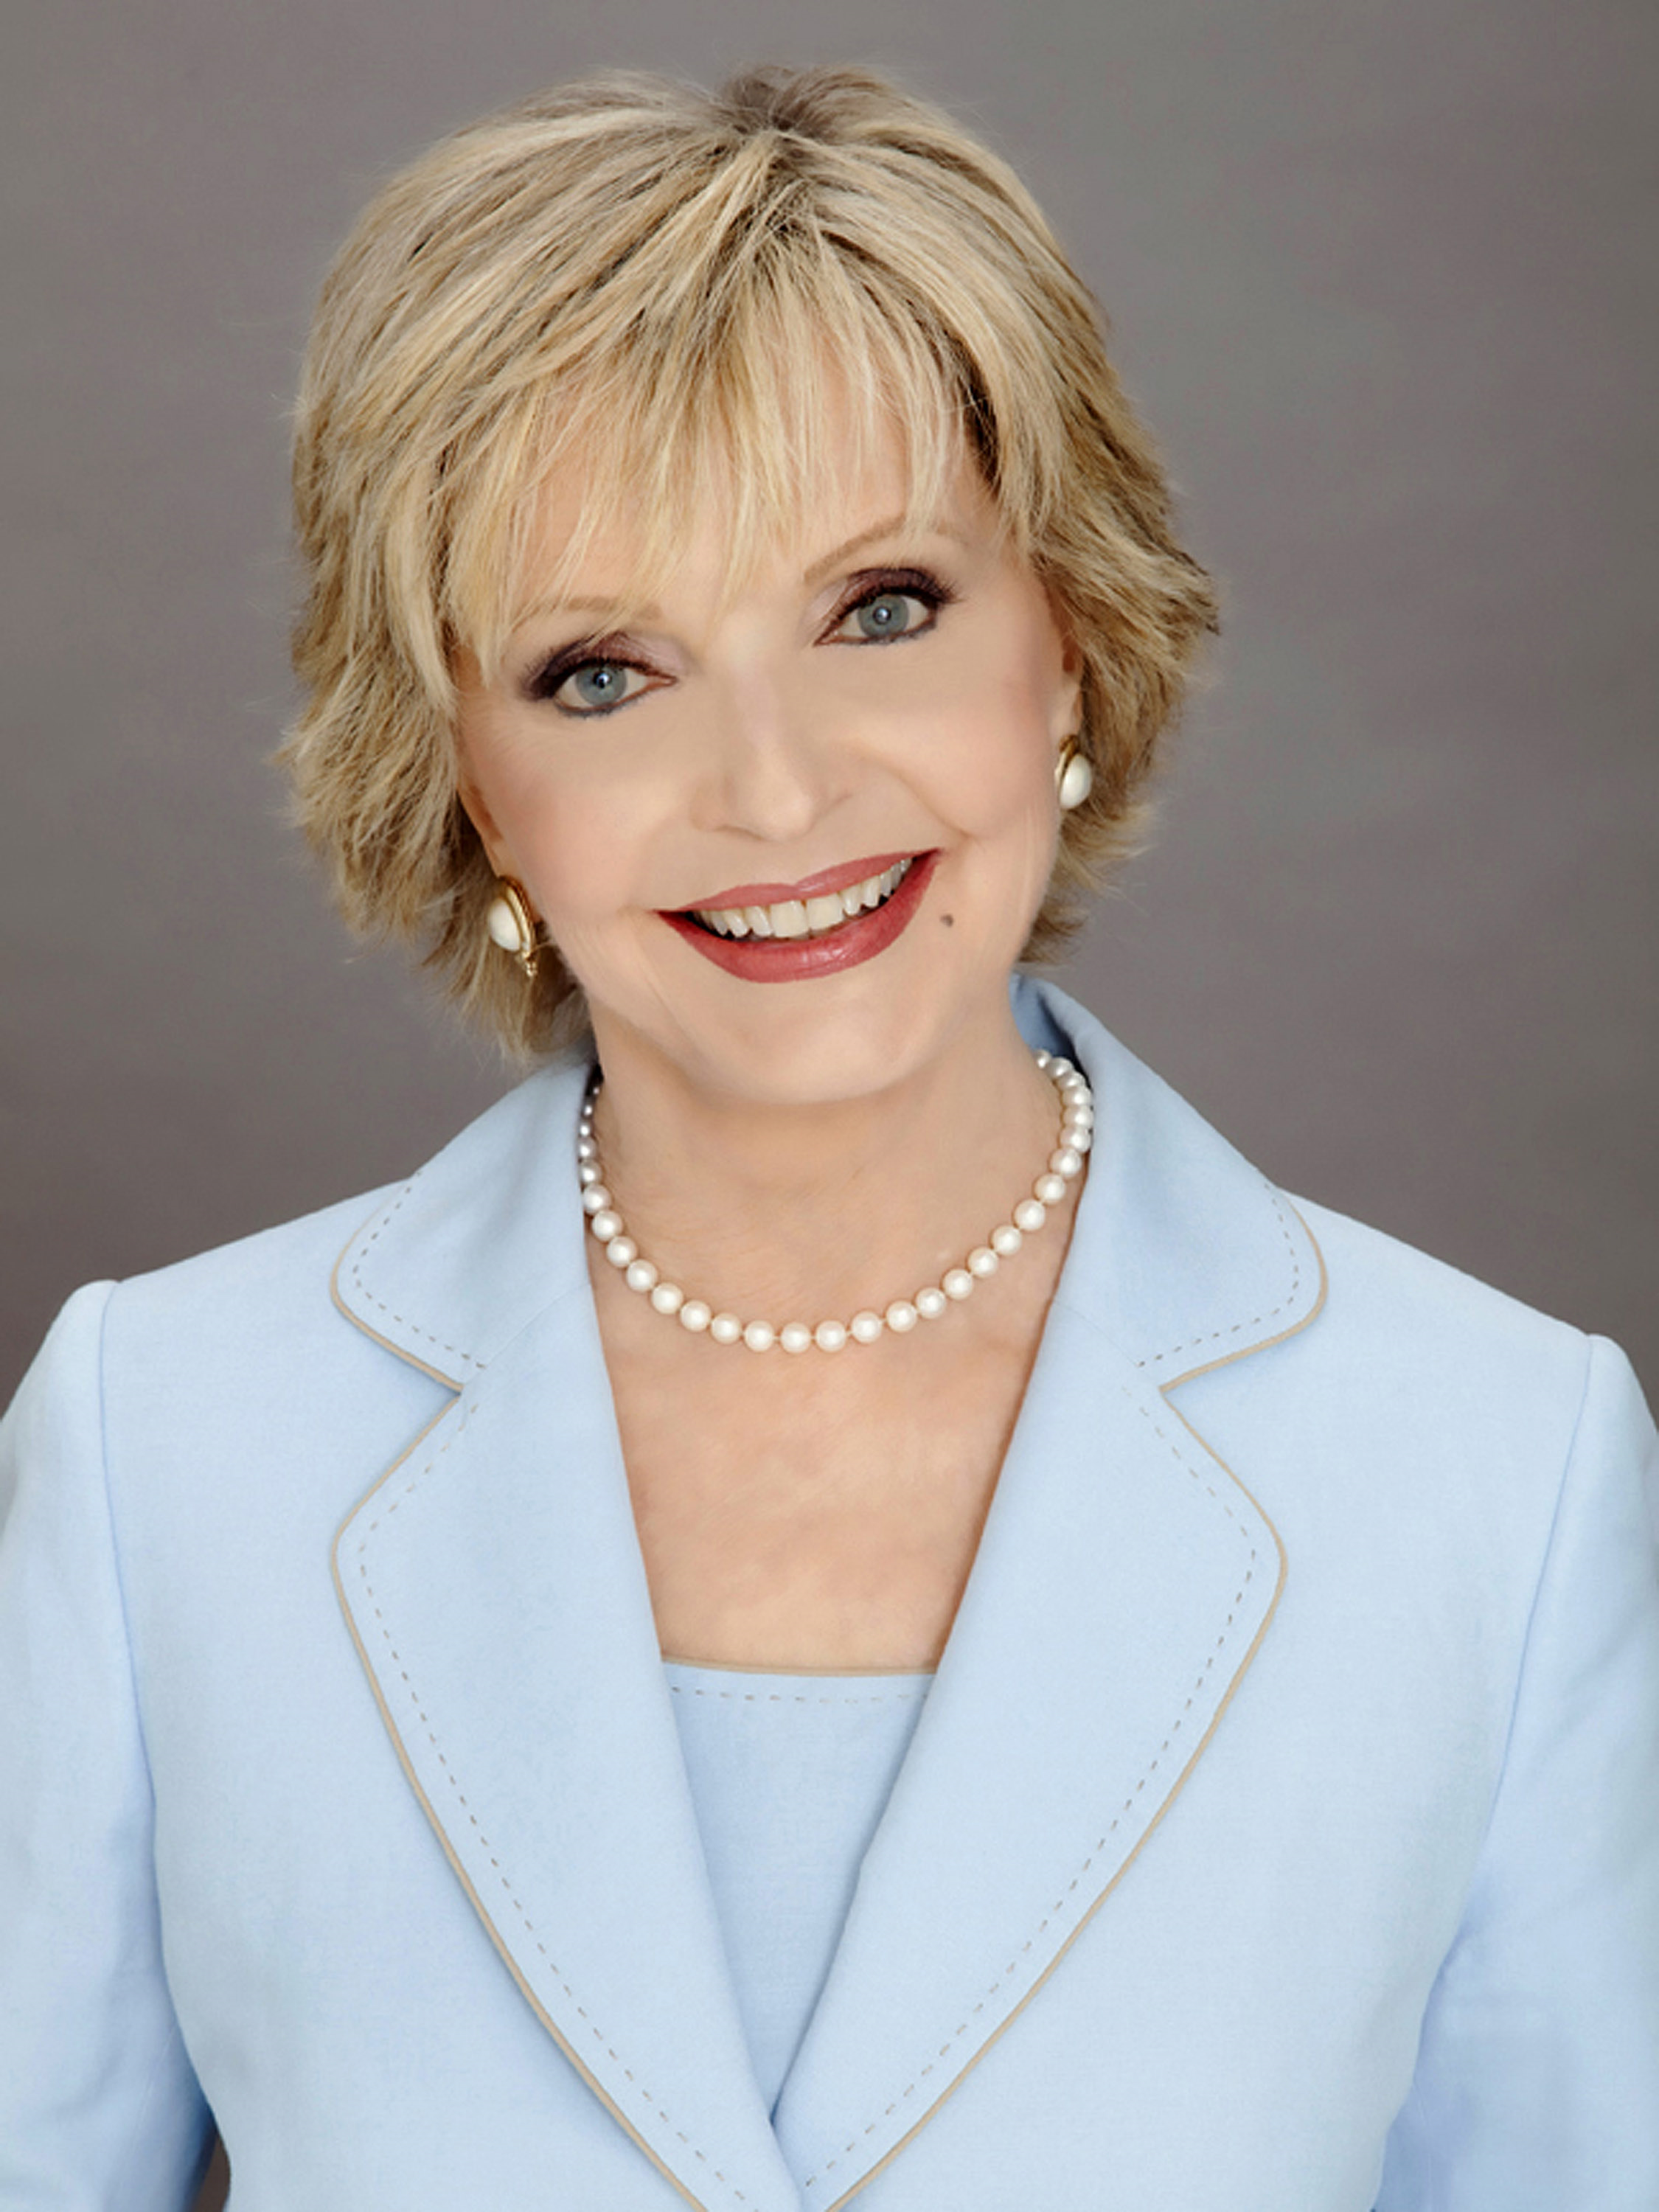 Florence Henderson born February 14, 1934